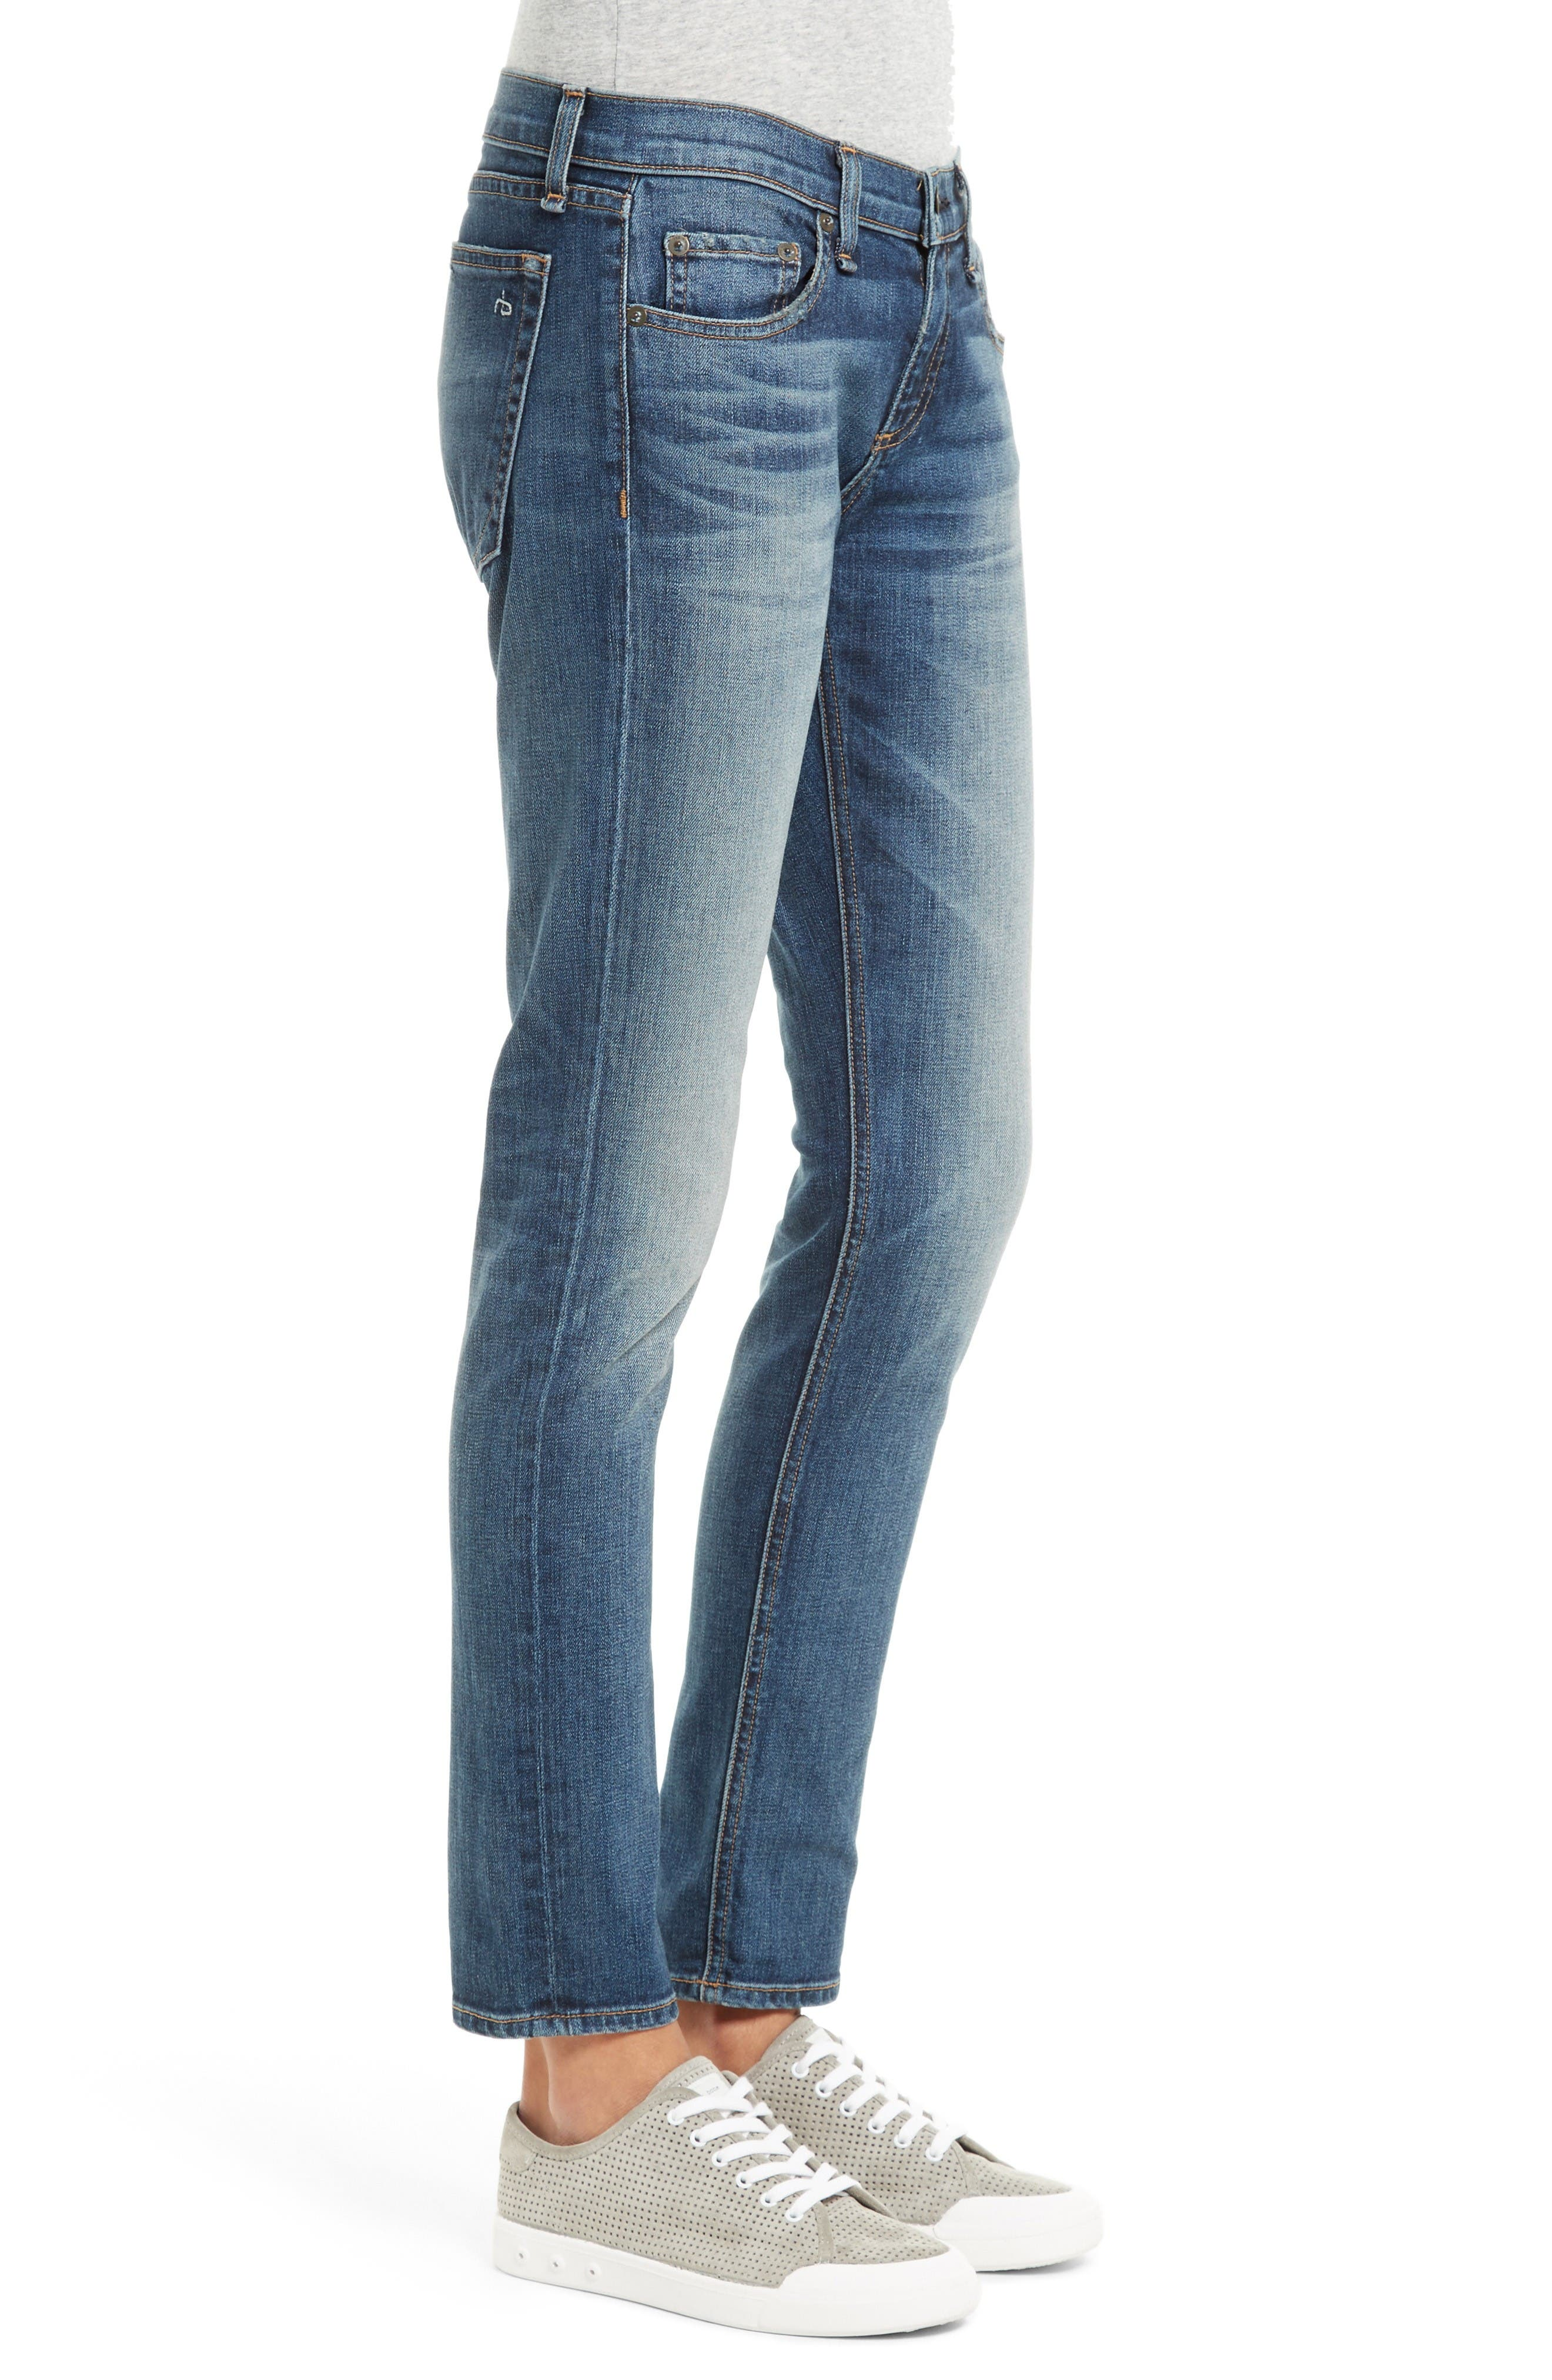 Alternate Image 3  - rag & bone/JEAN The Dre Slim Boyfriend Jeans (Bard)